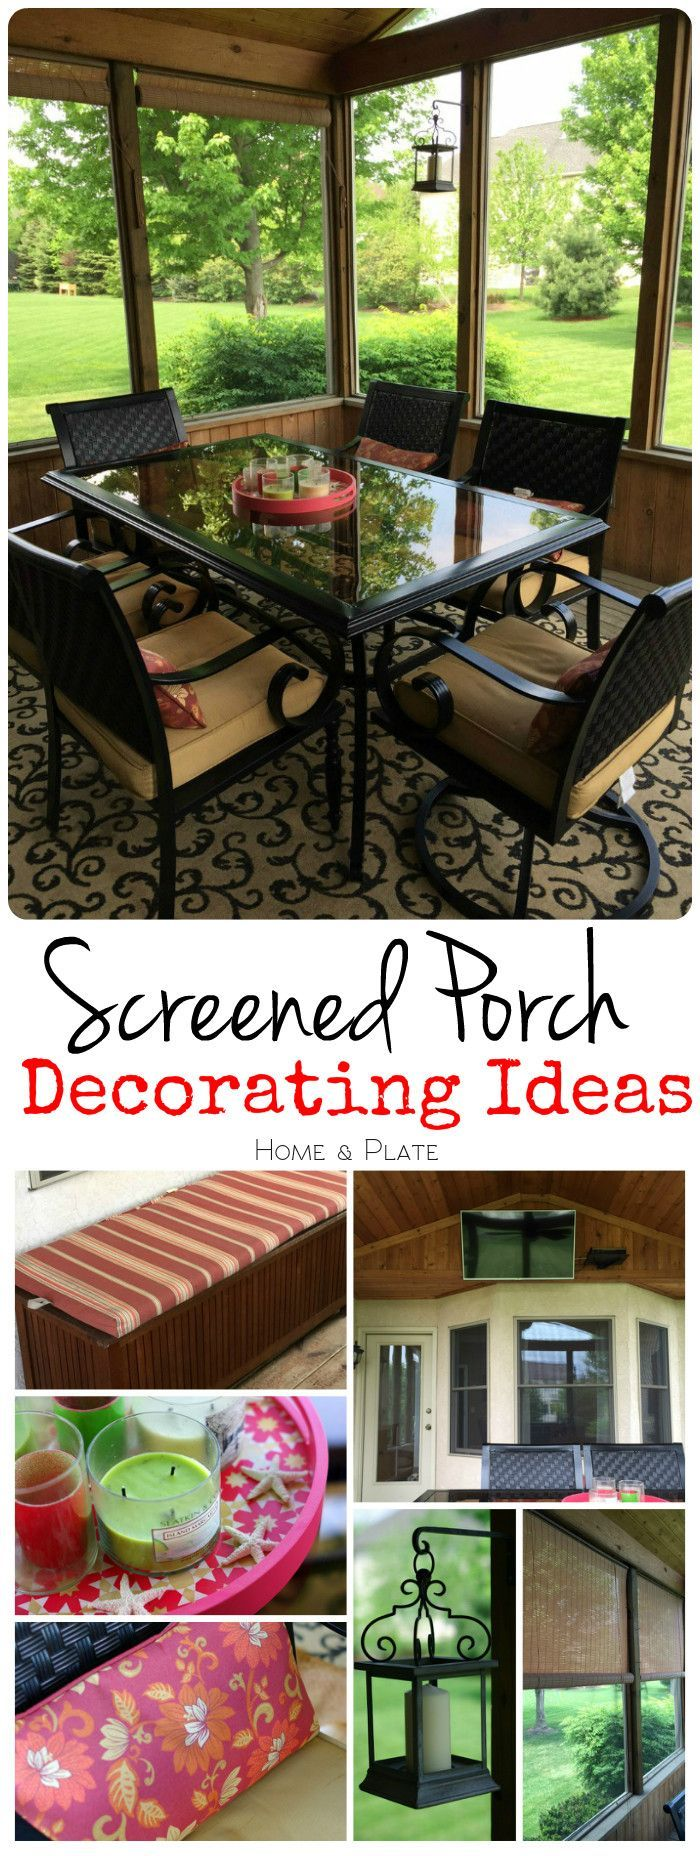 May 25 Screened Porch Decorating Ideas Screened Porches